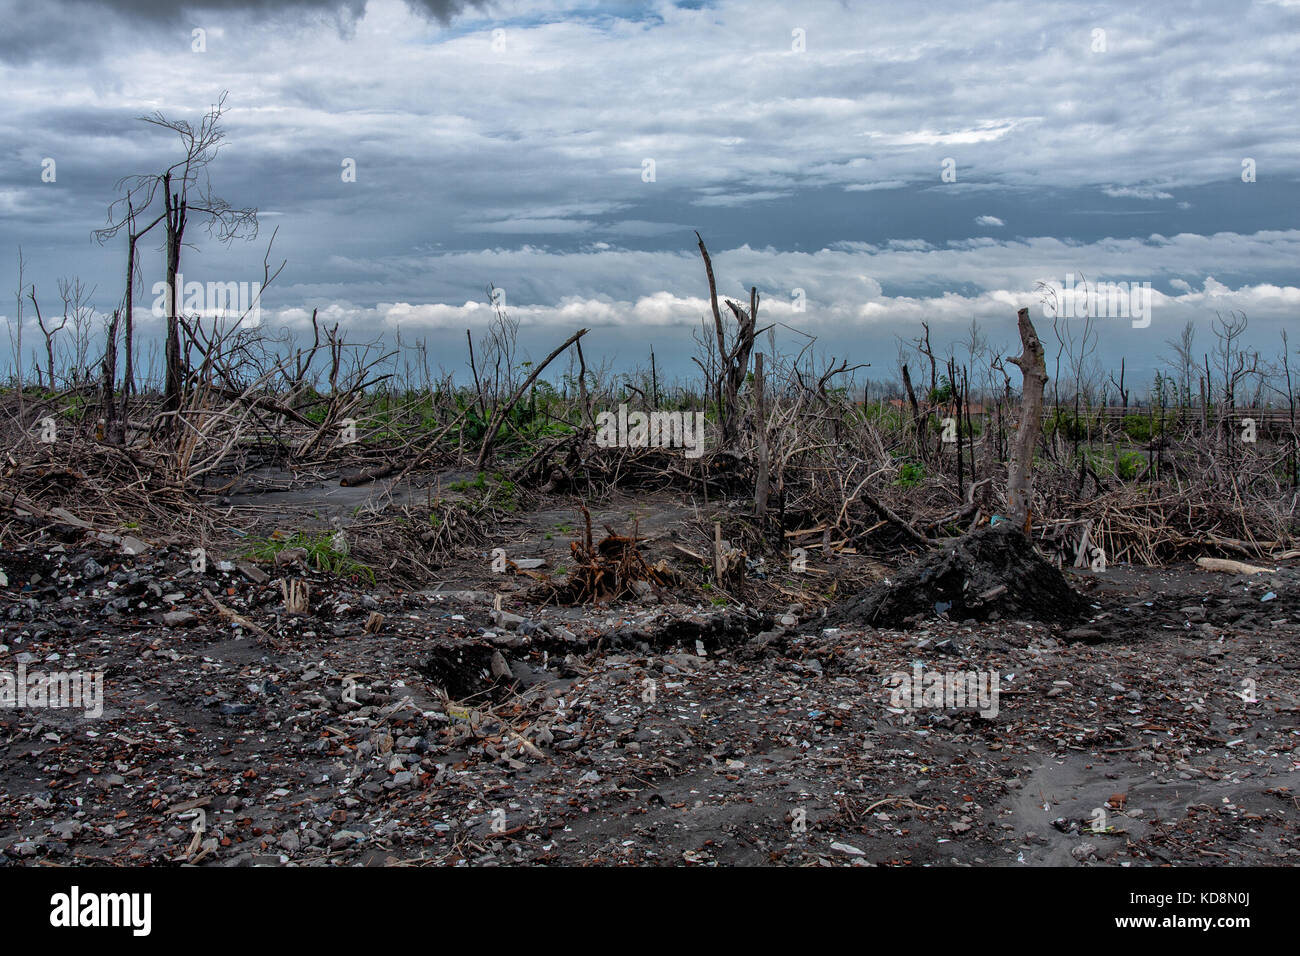 The forest burnt by the Mount Merapi eruption - Stock Image